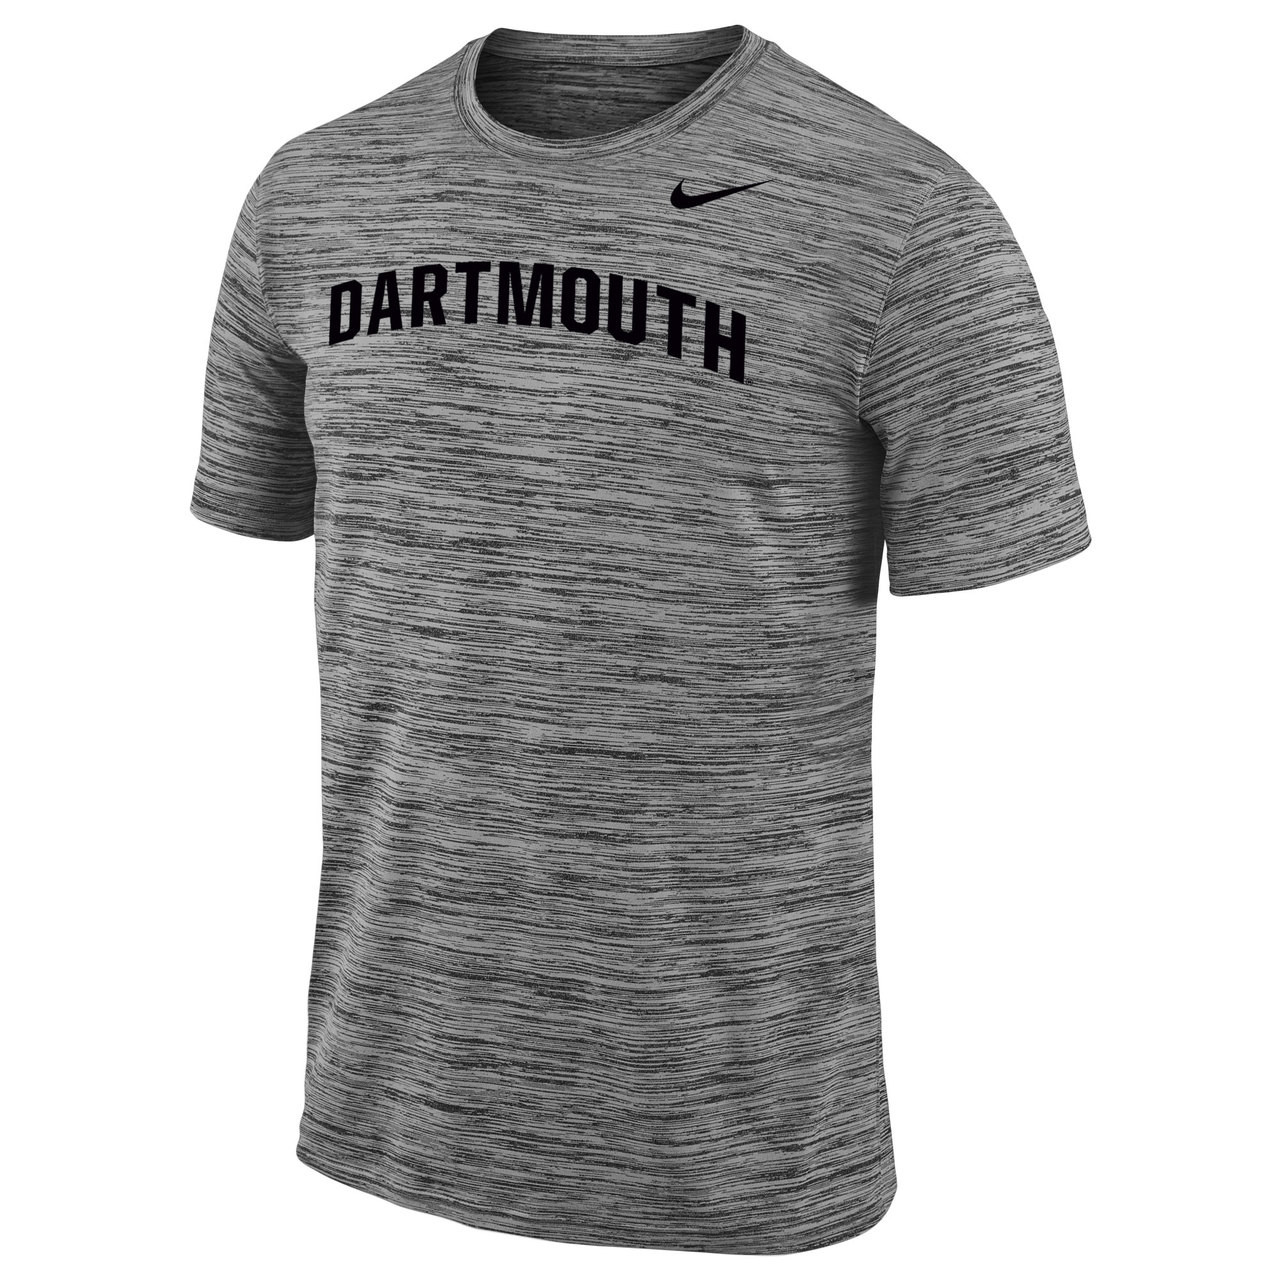 Men s grey Nike short sleeve tee with black Nike swoosh on left and black   Dartmouth d49bb1602fd1